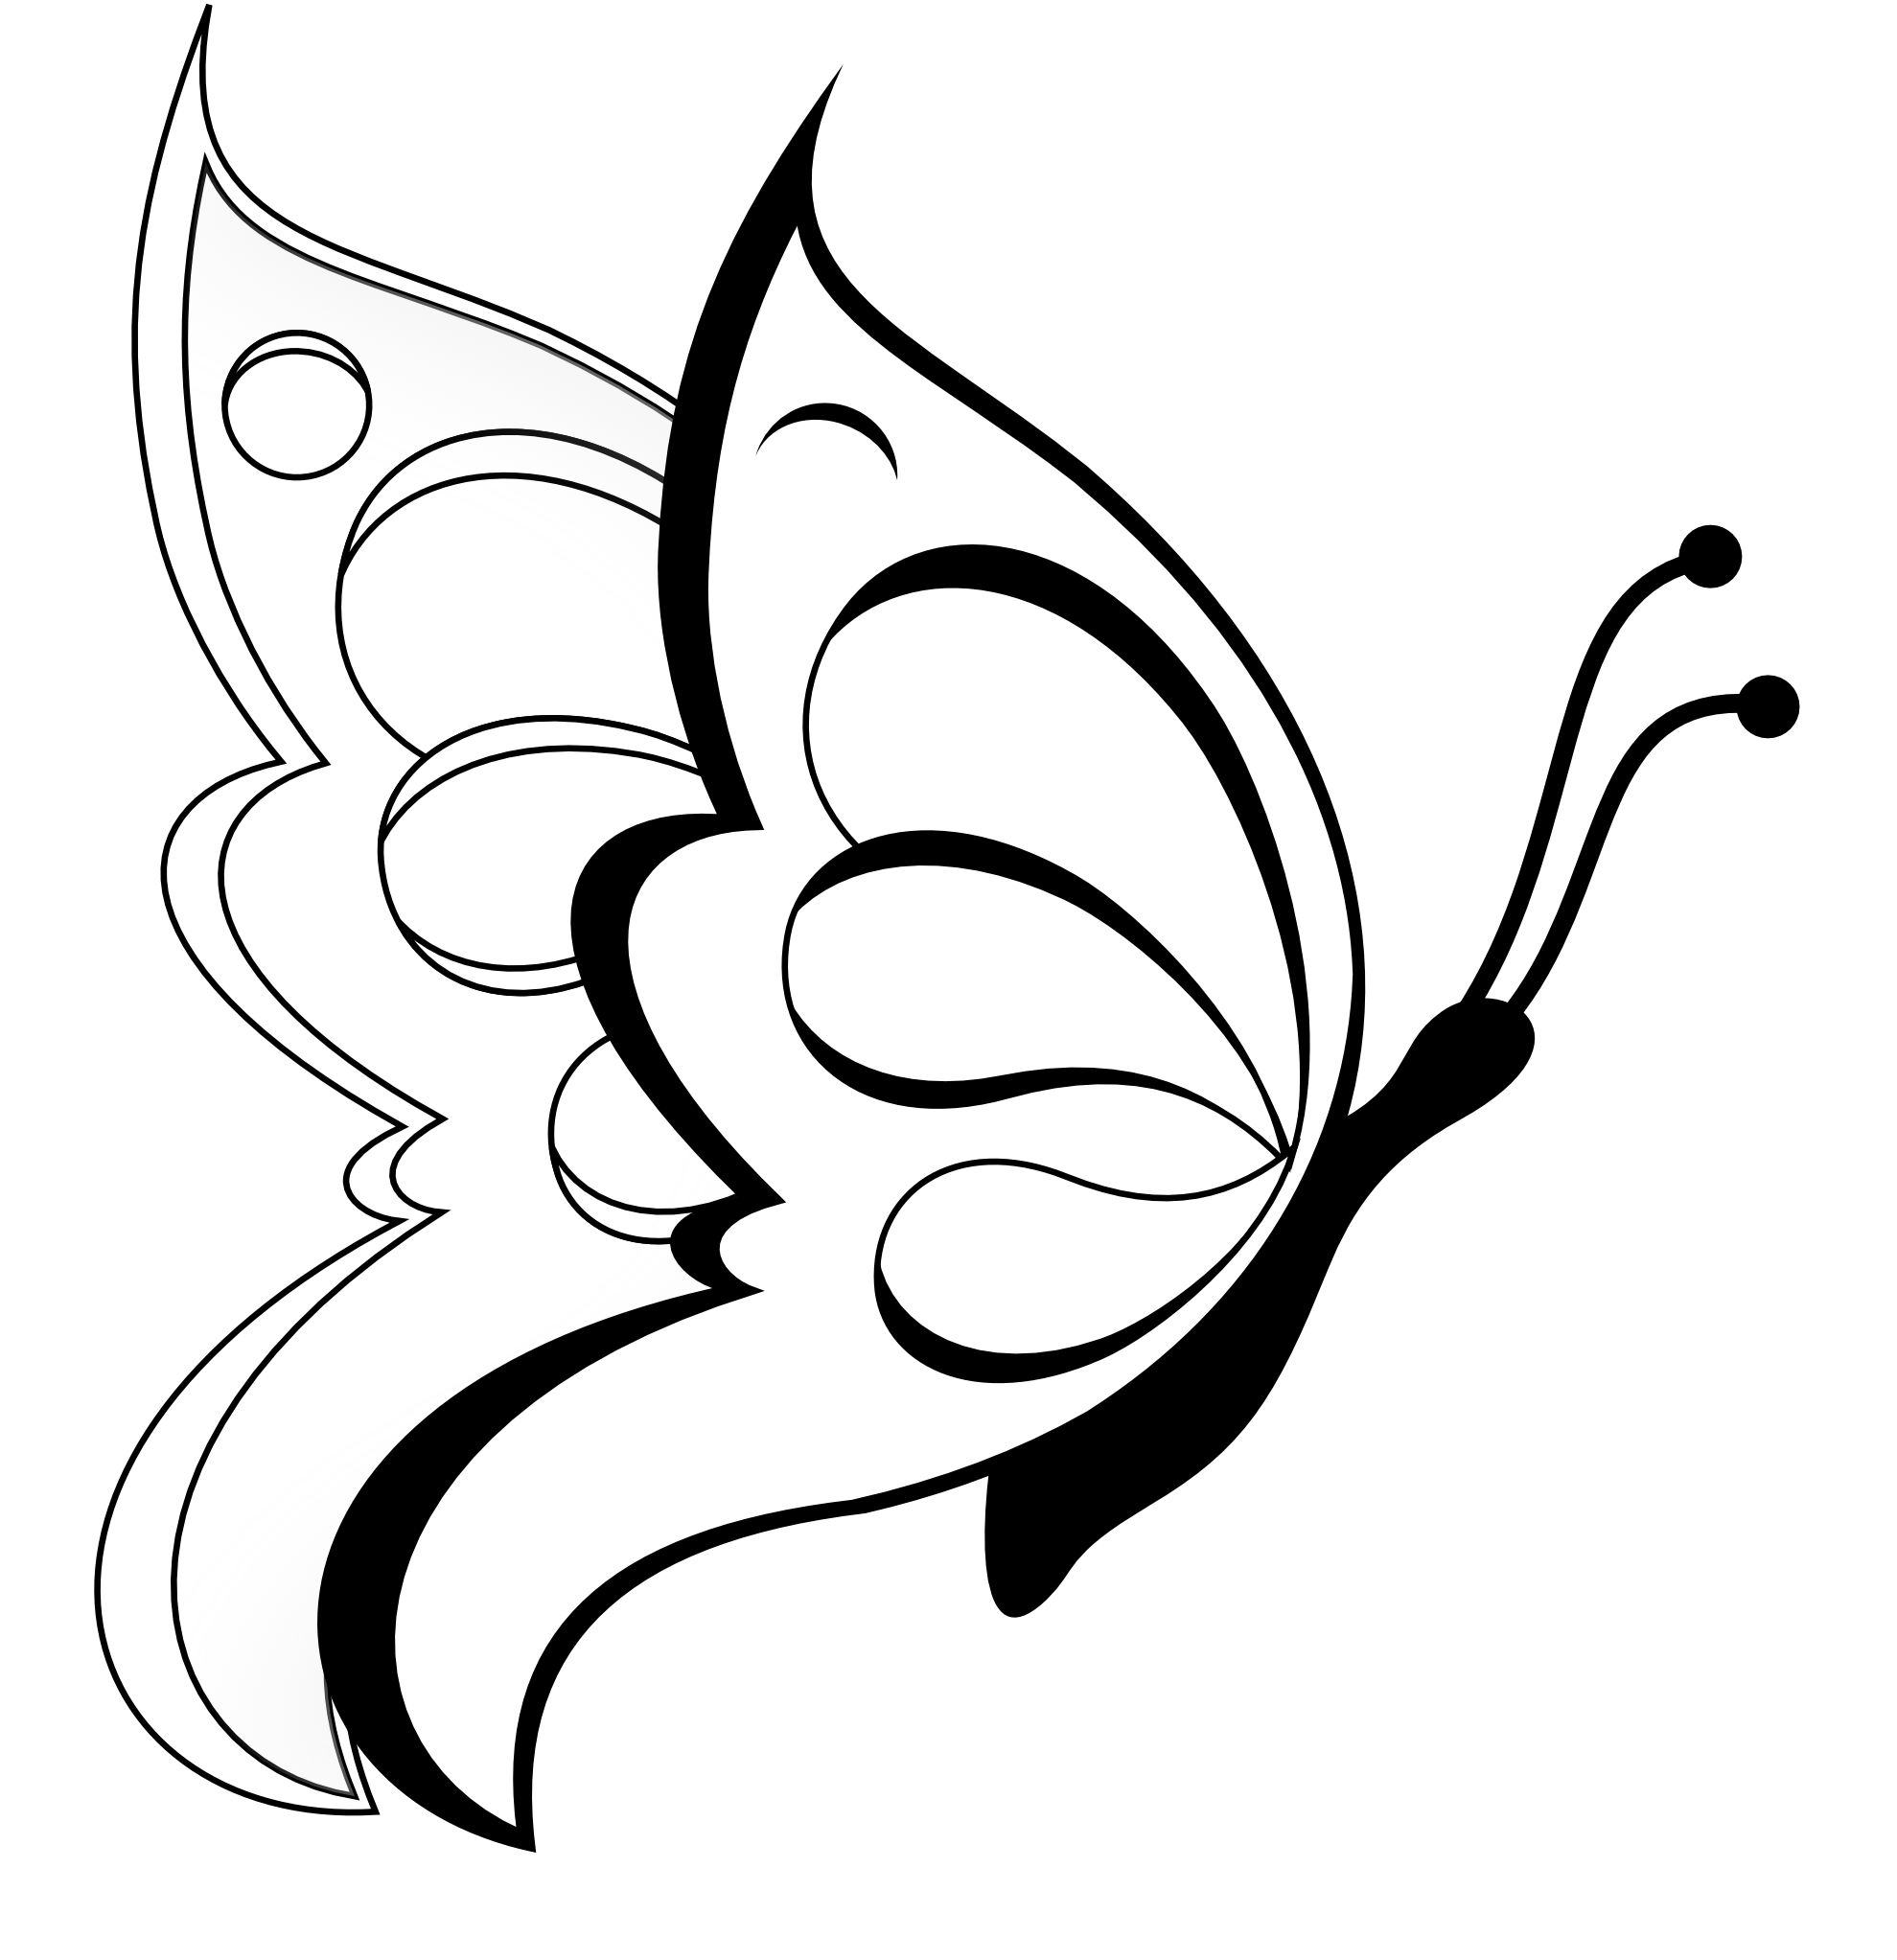 Drawing Lines Using Svg : Butterfly clipart black and white panda free